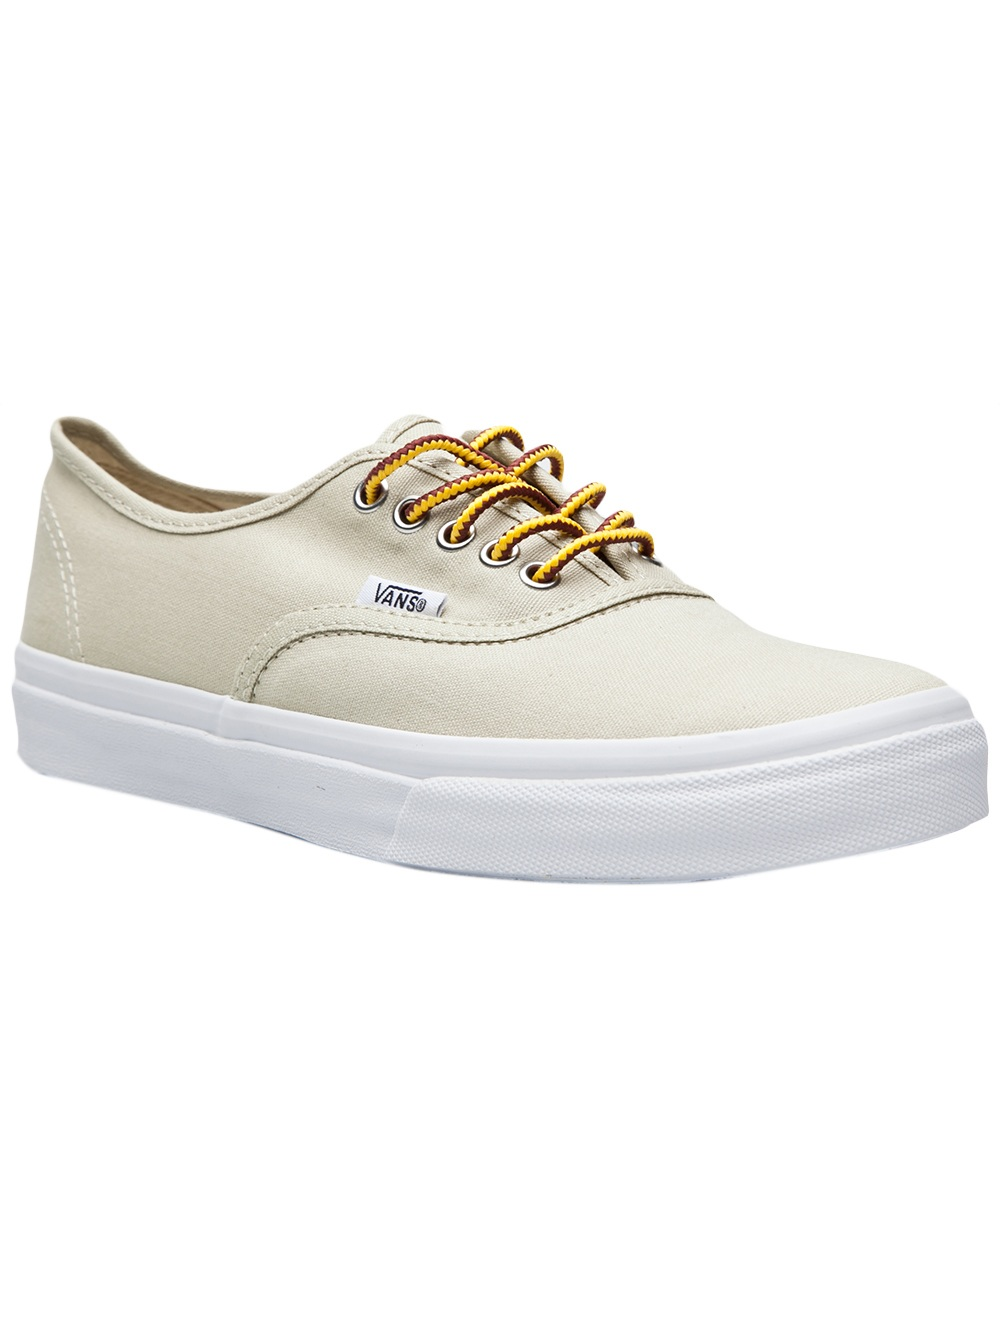 Lyst - Vans Authentic Slim Laceup in Natural 19196aeb56